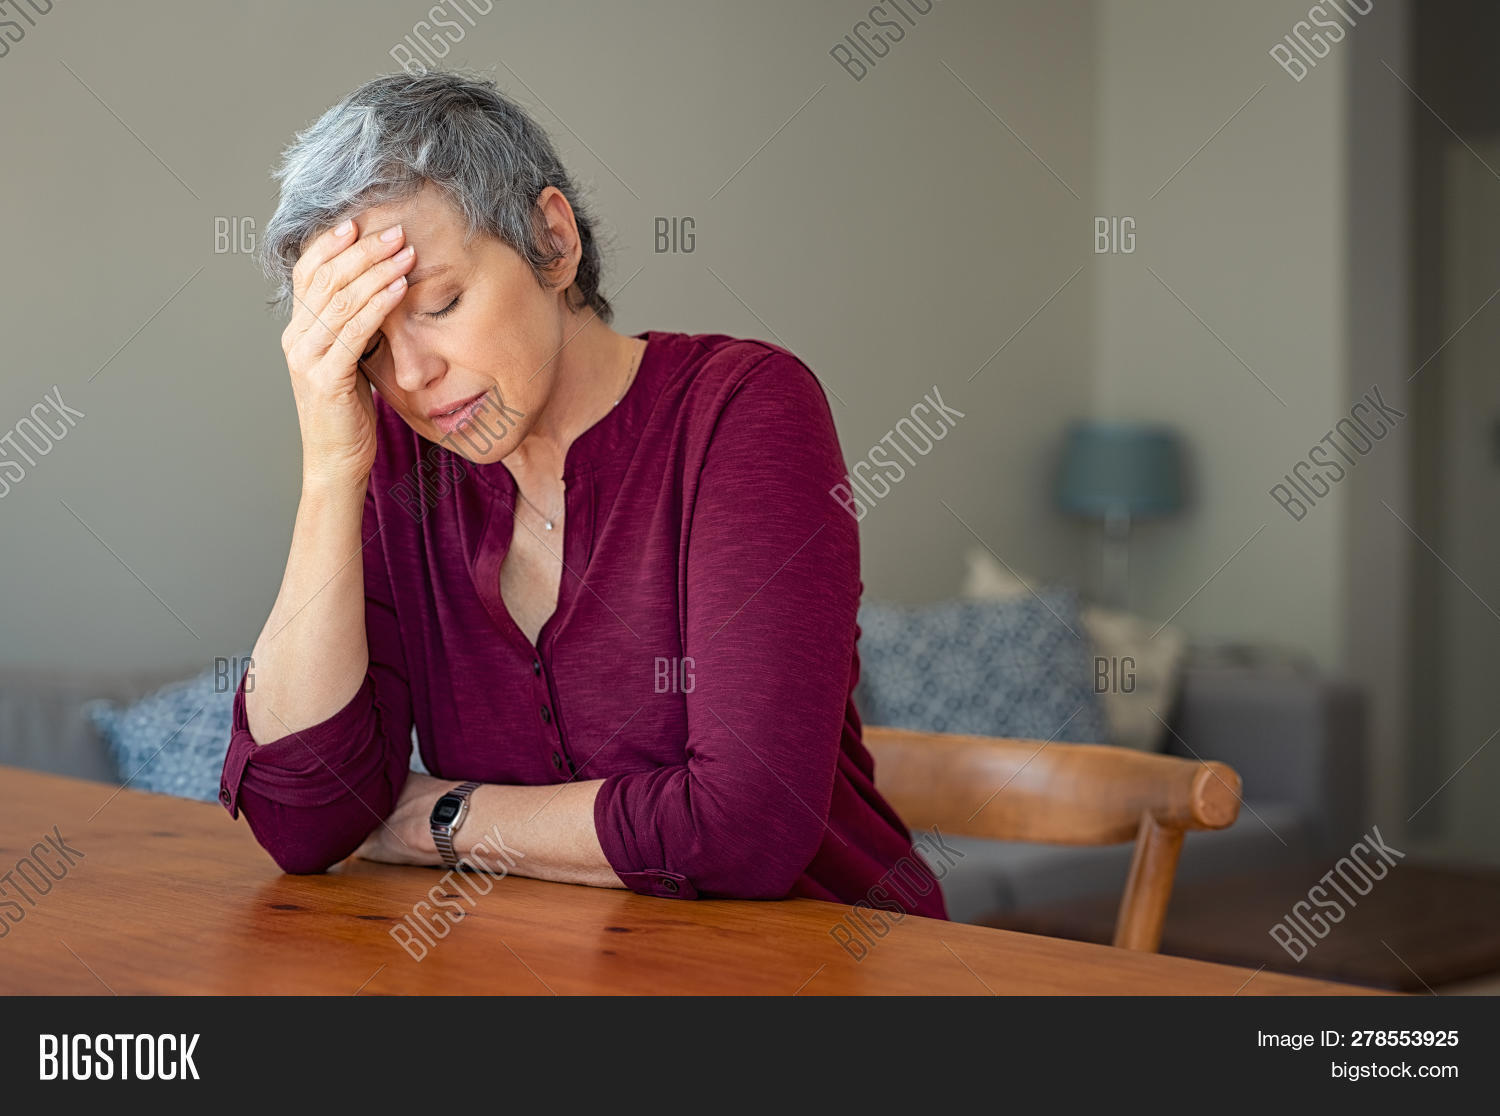 Senior woman suffering from headache while sitting at table in a living room. Depressed mature woman